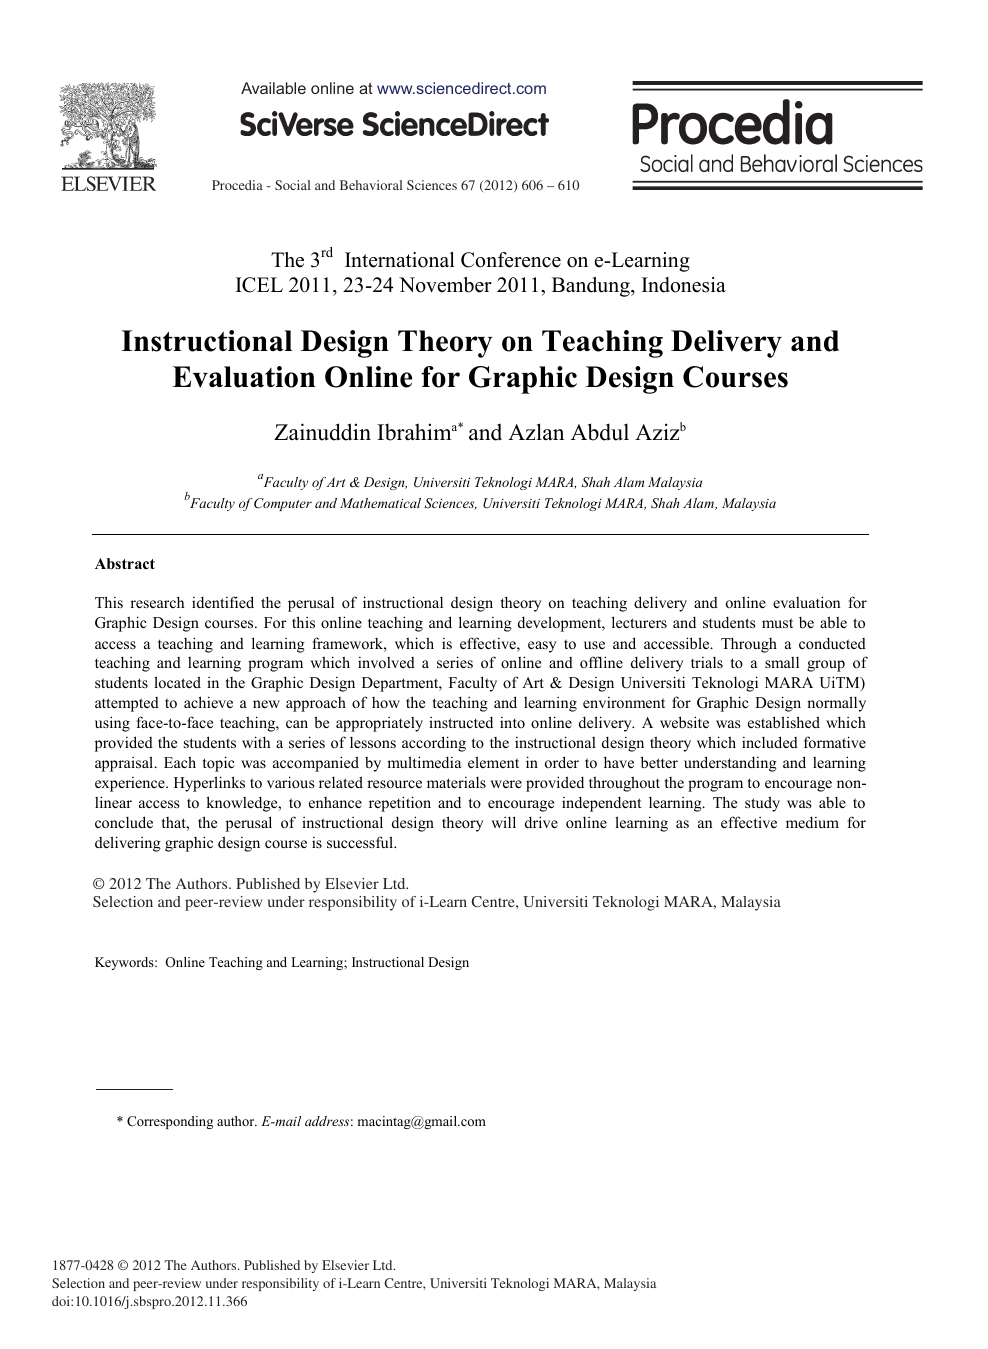 Instructional Design Theory on Teaching Delivery and